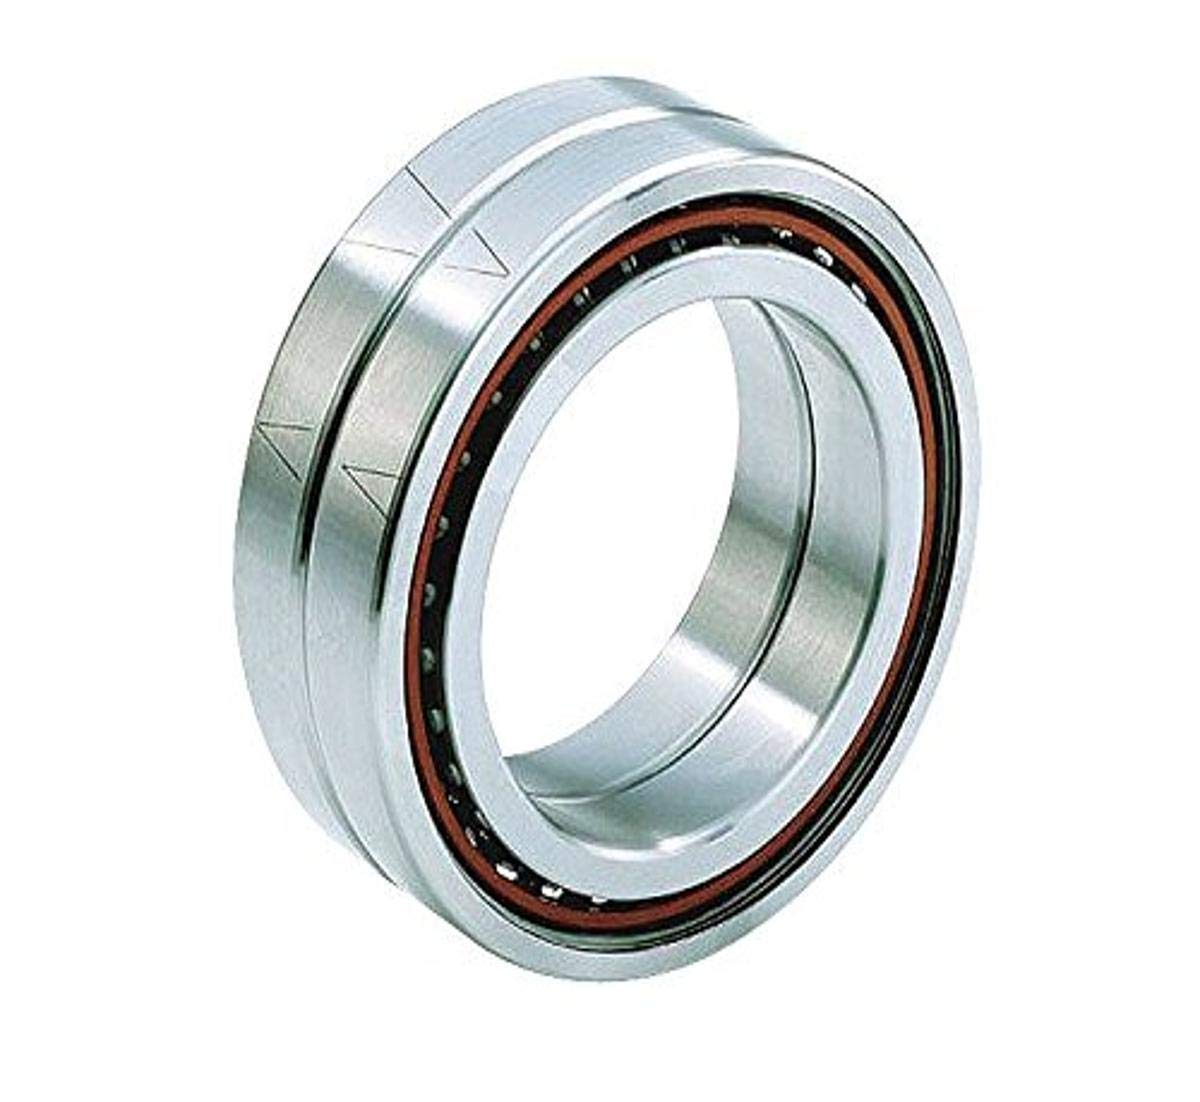 Barden Bearings C206HCRRDUL Pair Ball Bearings, Ceramic, Spindle, Angular Contact, Light Preload, Contact Angle 15°, 30 mm ID, 62 mm OD, 62 mm Width, Double Seal (Pack of 2)